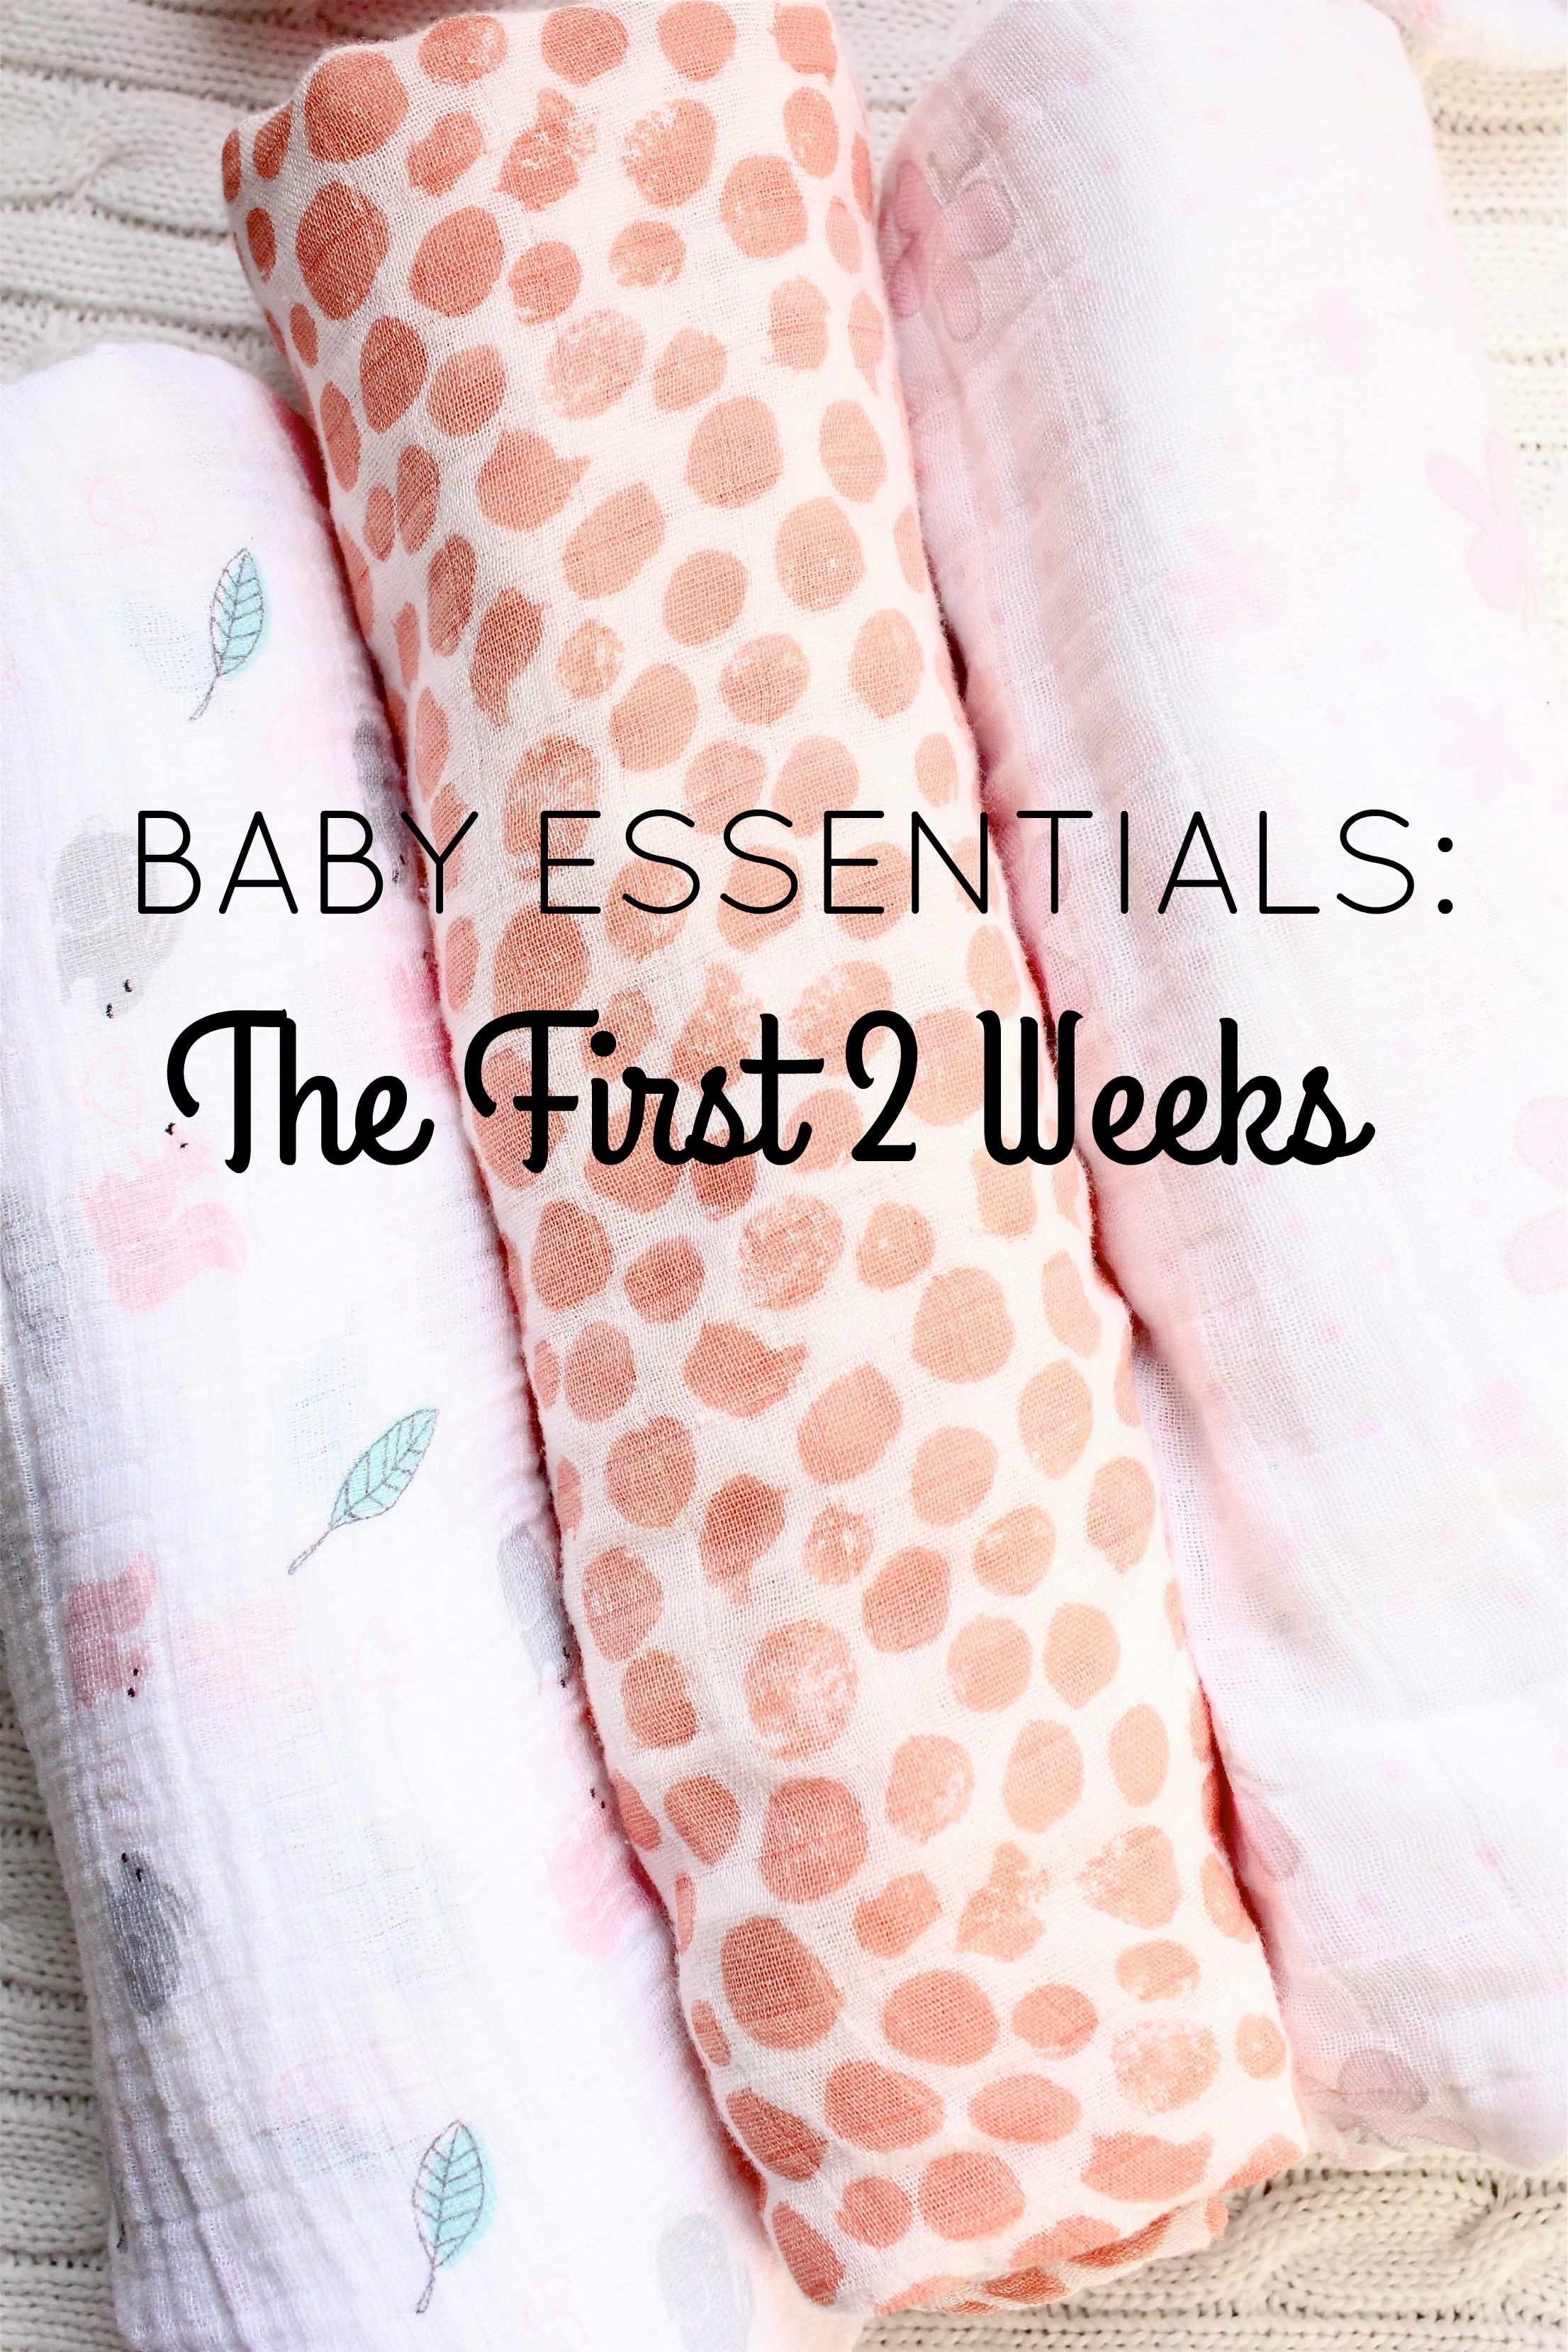 Baby Essentials: The First 2 Weeks